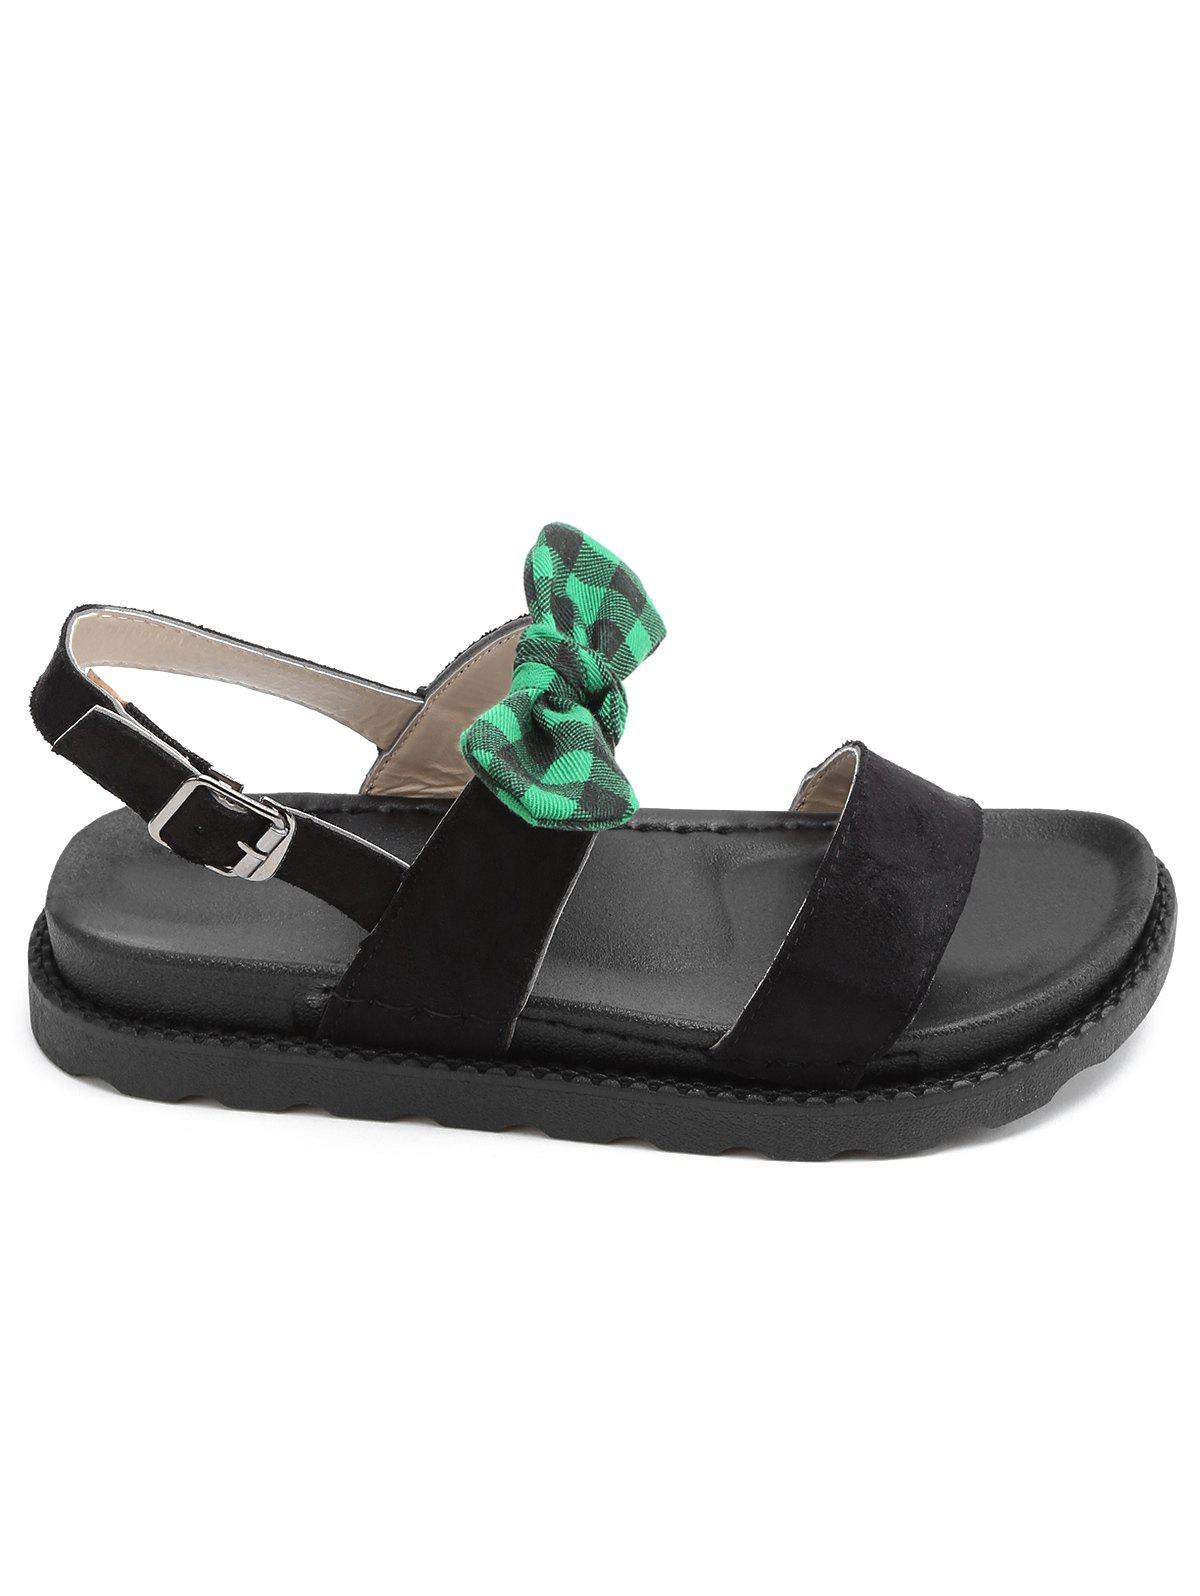 Leisure Outdoor Plaid Bowknot Sandals - GREEN 36